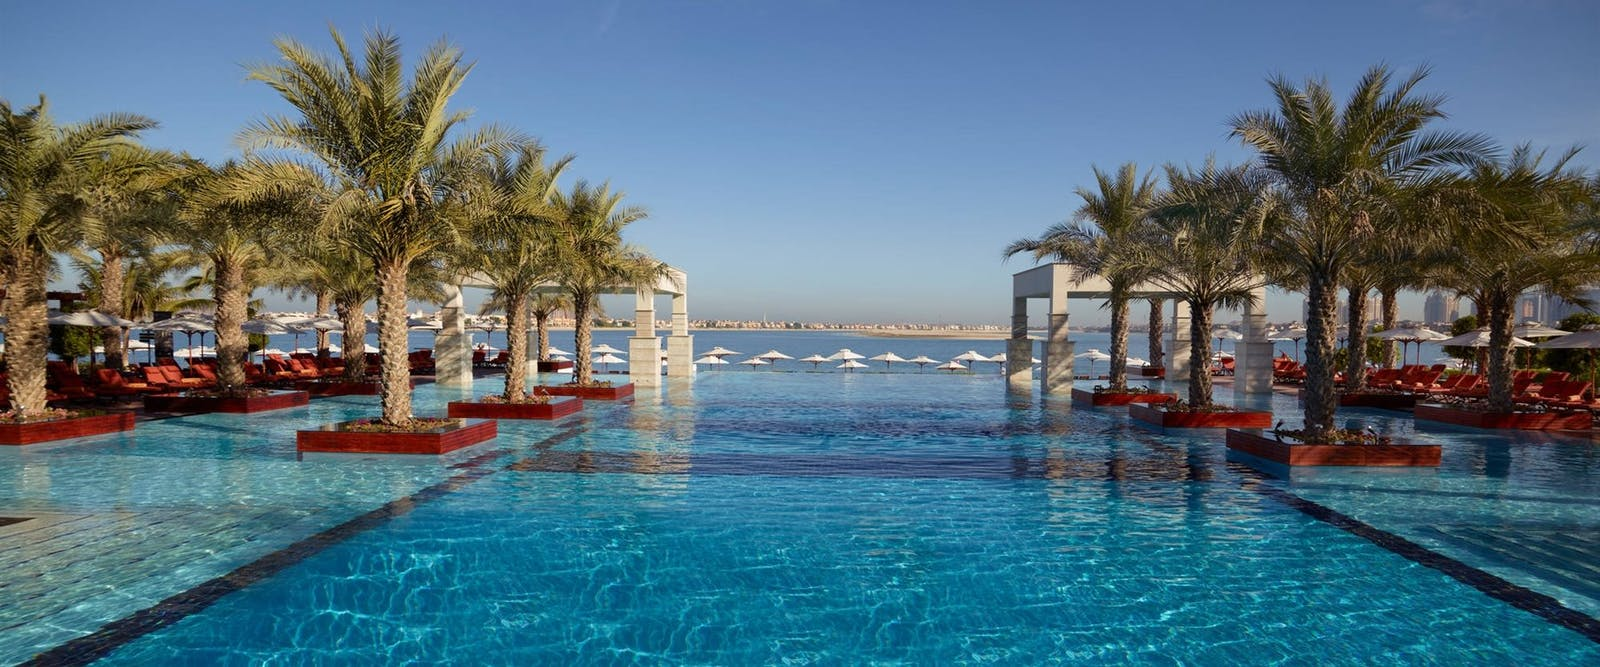 Swimming pool and view at Jumeirah Zabeel Saray, Dubai